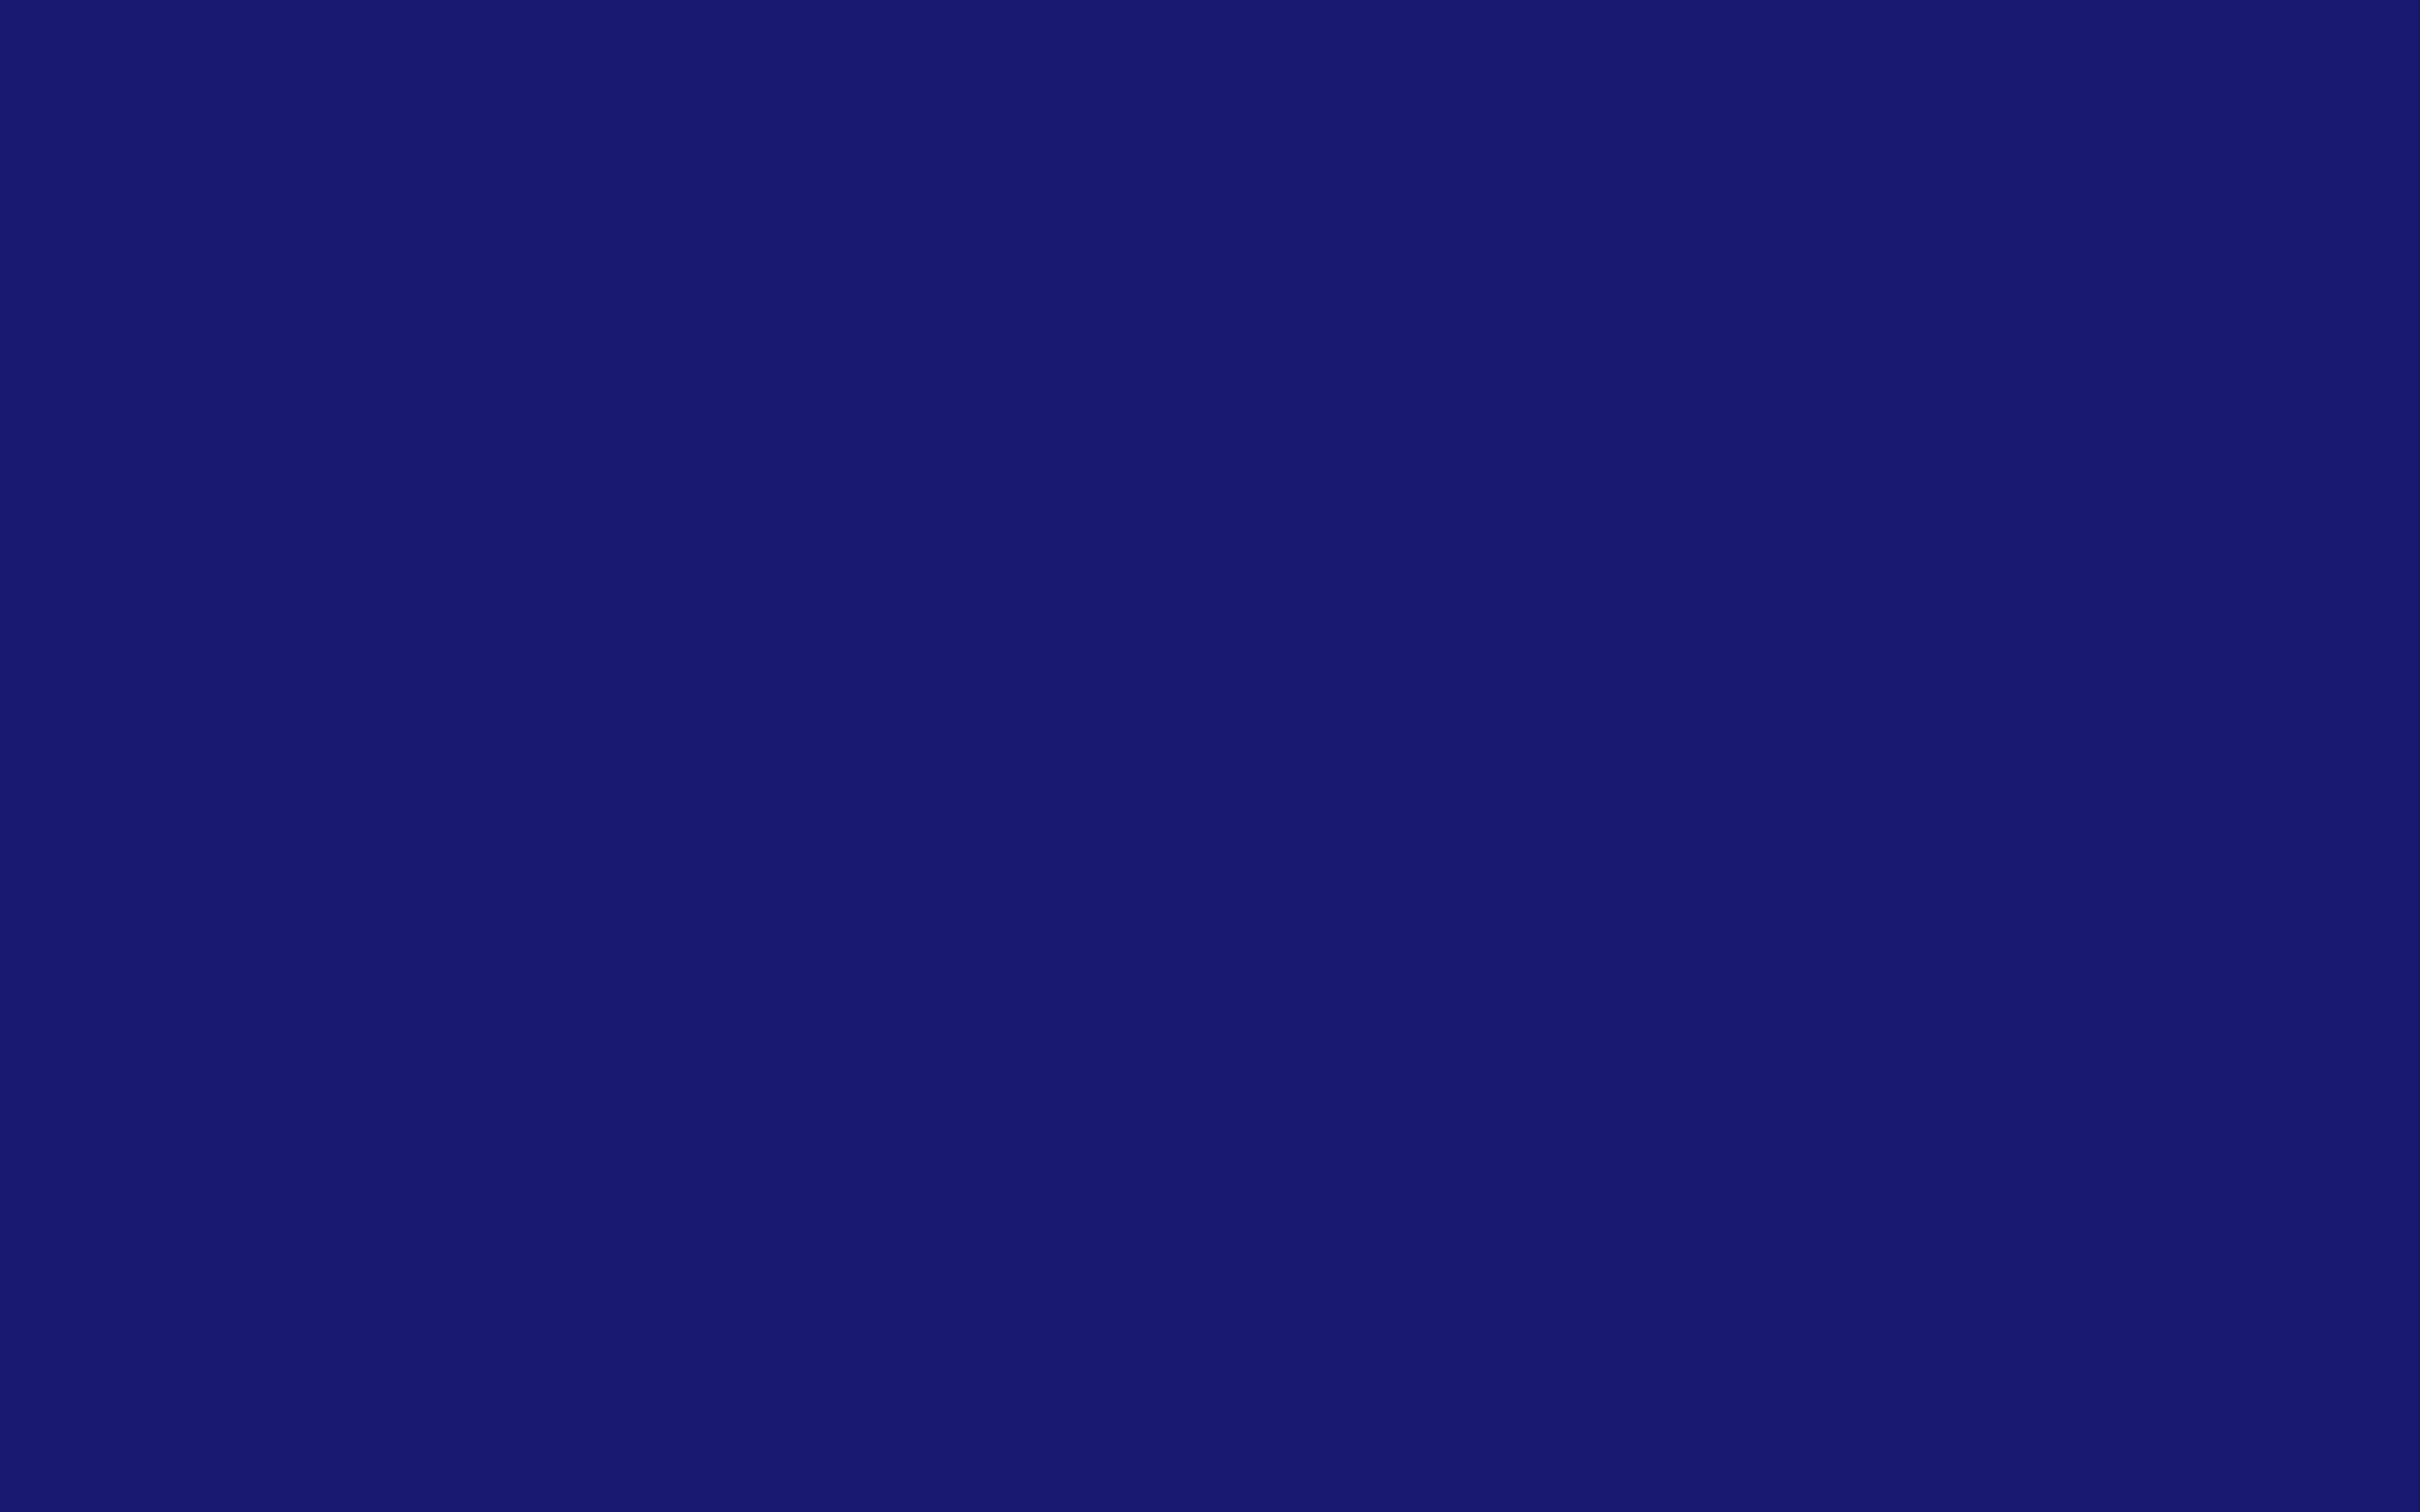 2880x1800 Midnight Blue Solid Color Background